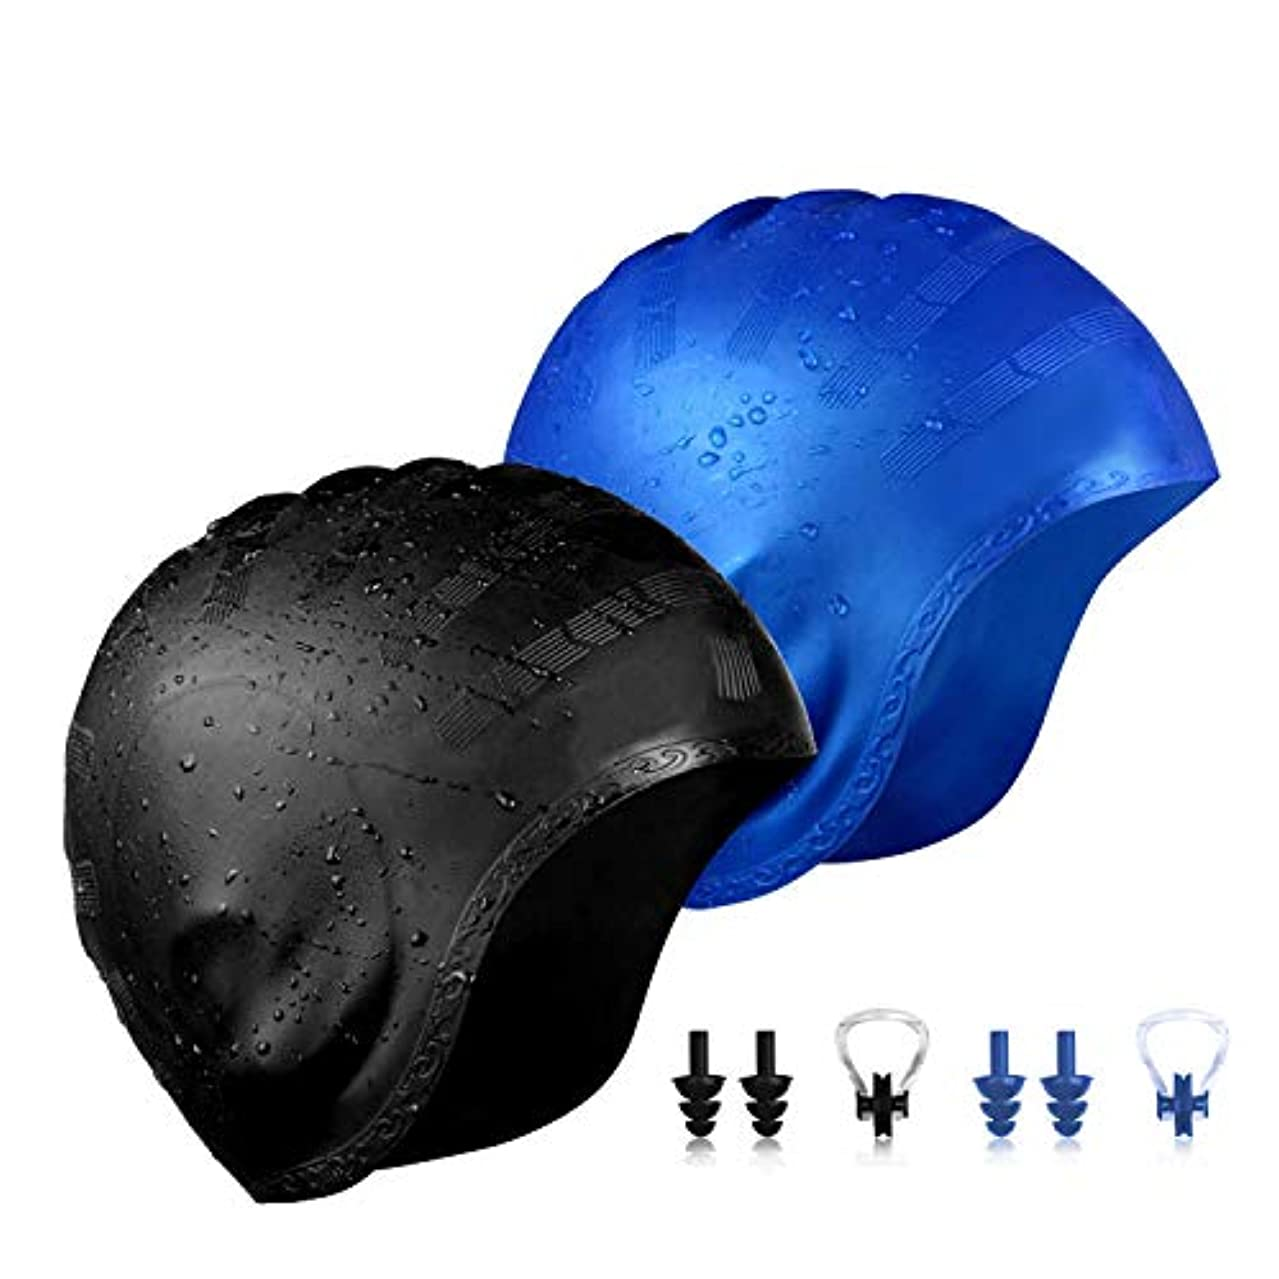 QXQY Swimming Cap for Long Hair,Silicone Swim Cap Cover Ears for Women Men with Nose Clip and Ear Plugs